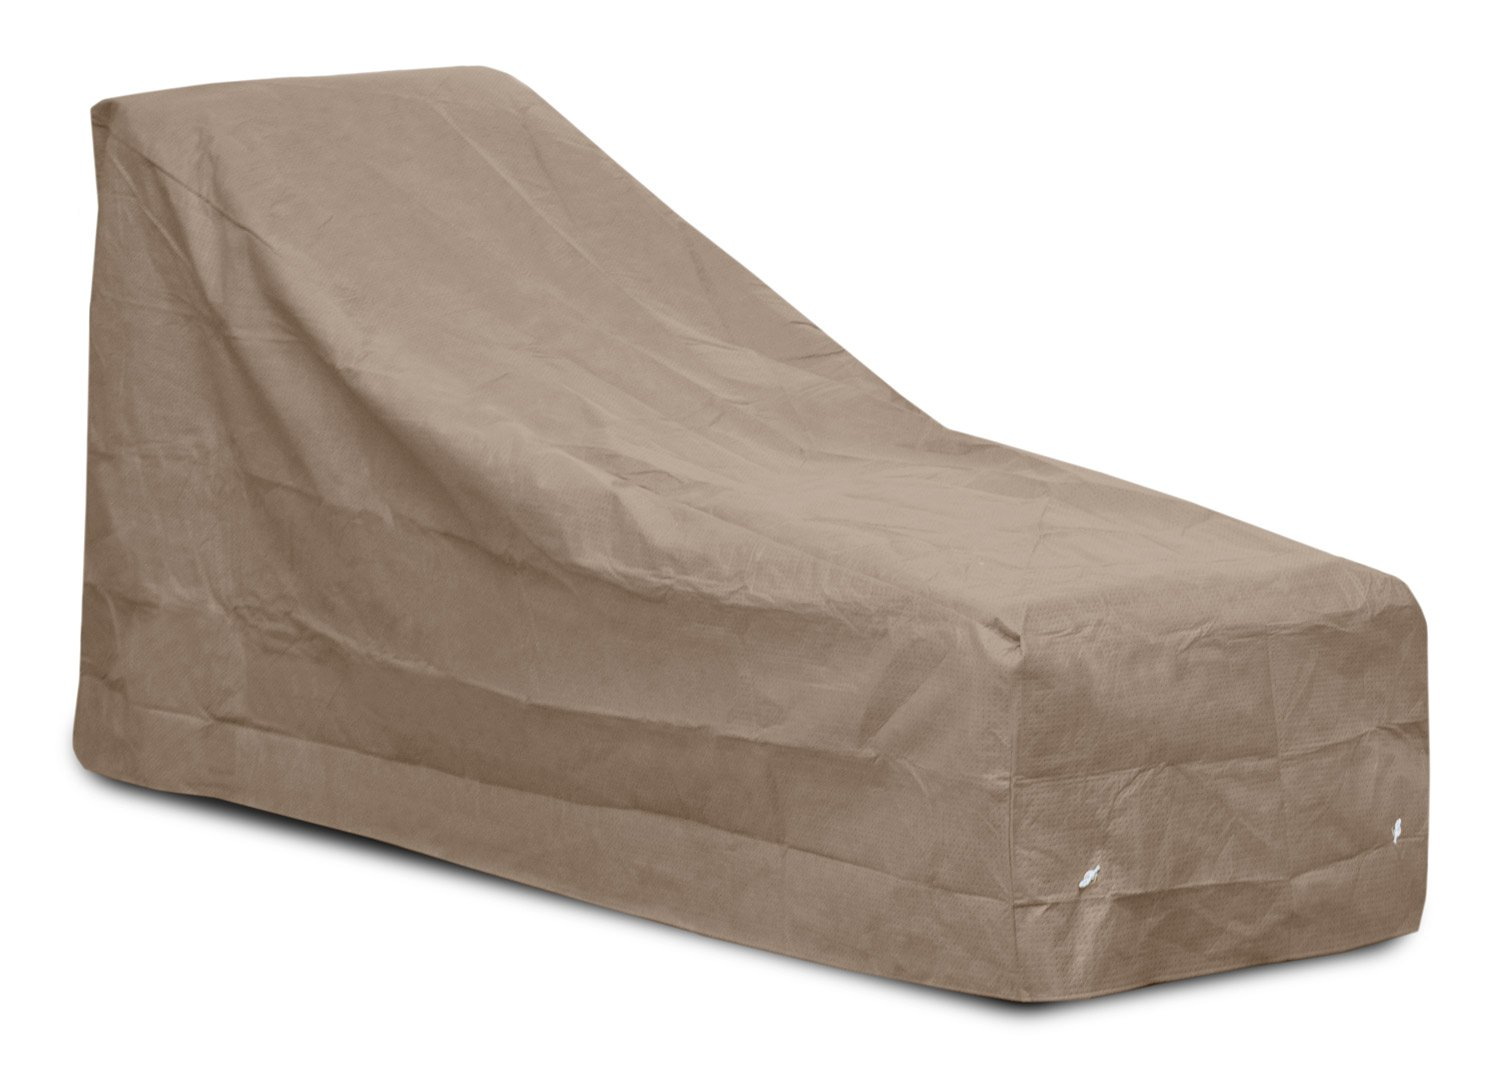 KoverRoos III 33250 Large Chaise Cover, 82 by 30 by 32-Inch, Taupe